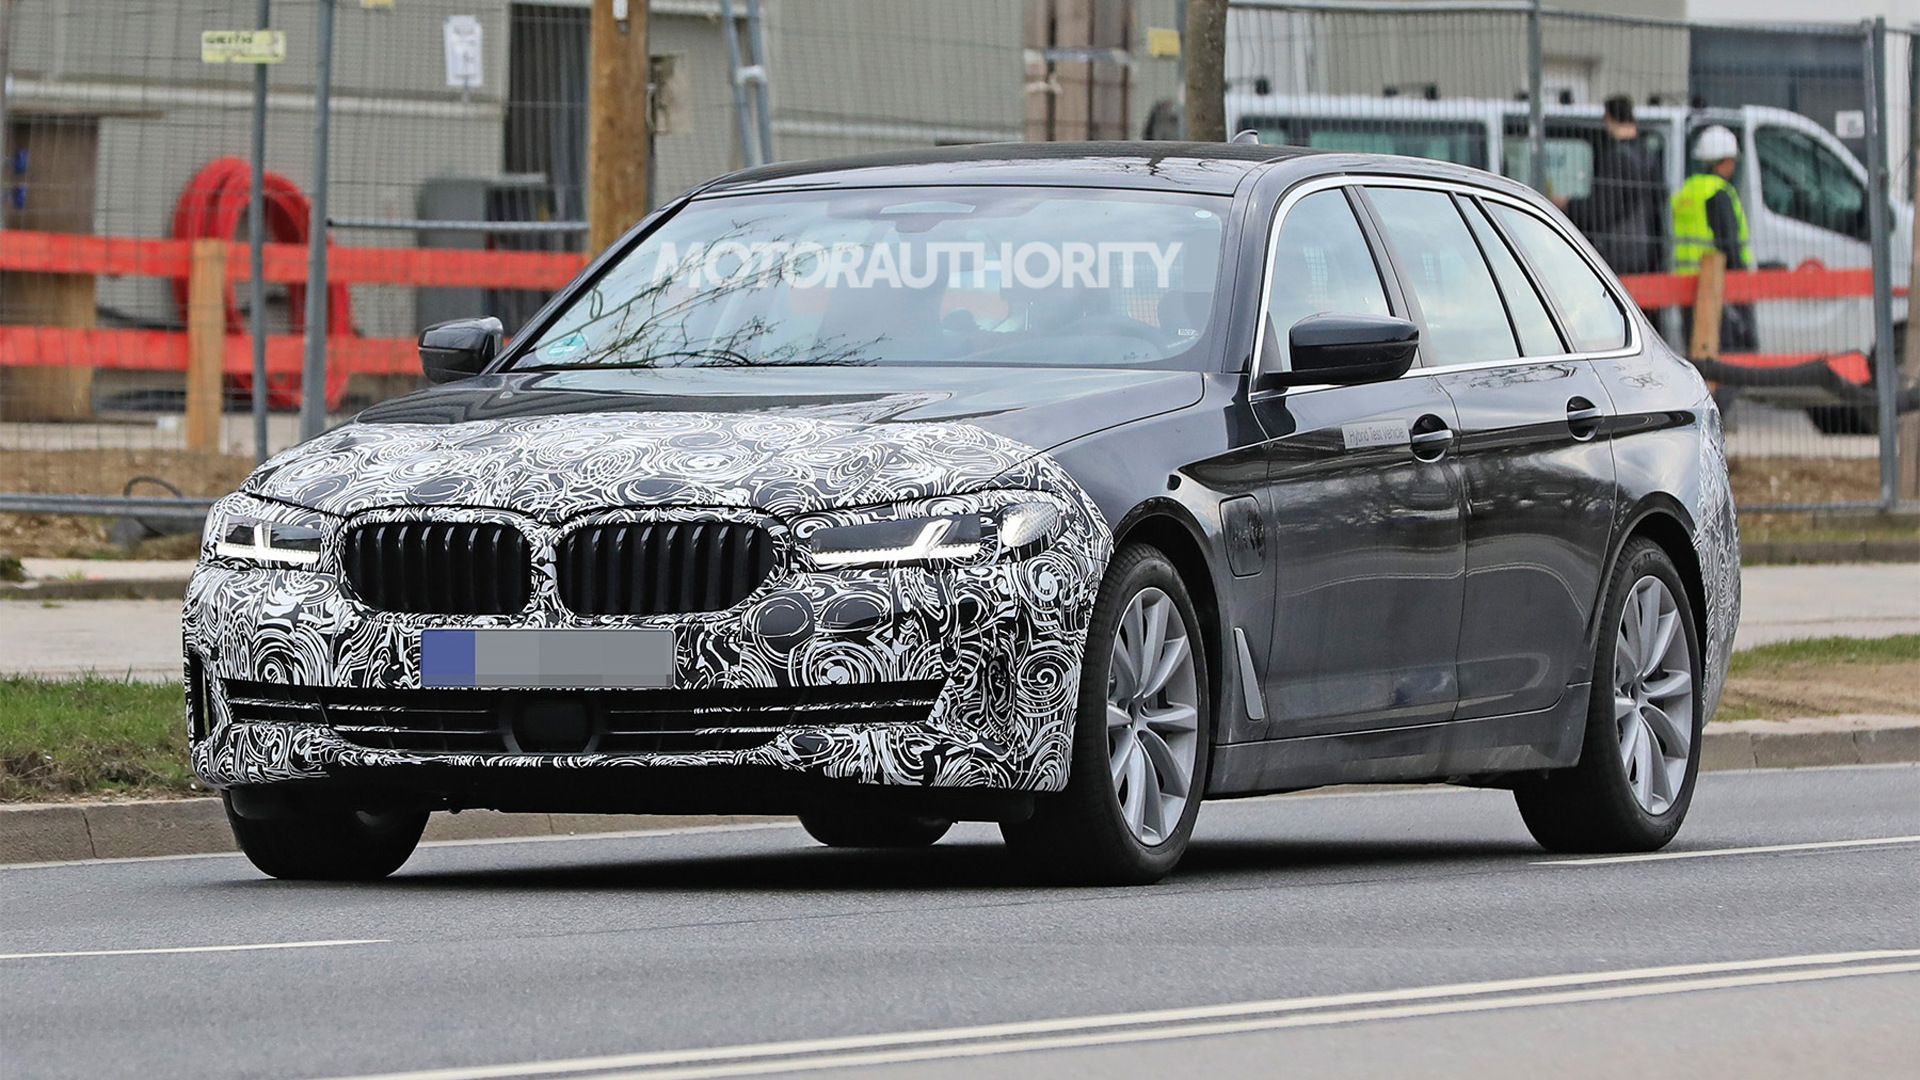 2021 BMW 5-Series Touring facelift spy shots - Photo credit: S. Baldauf/SB-Medien